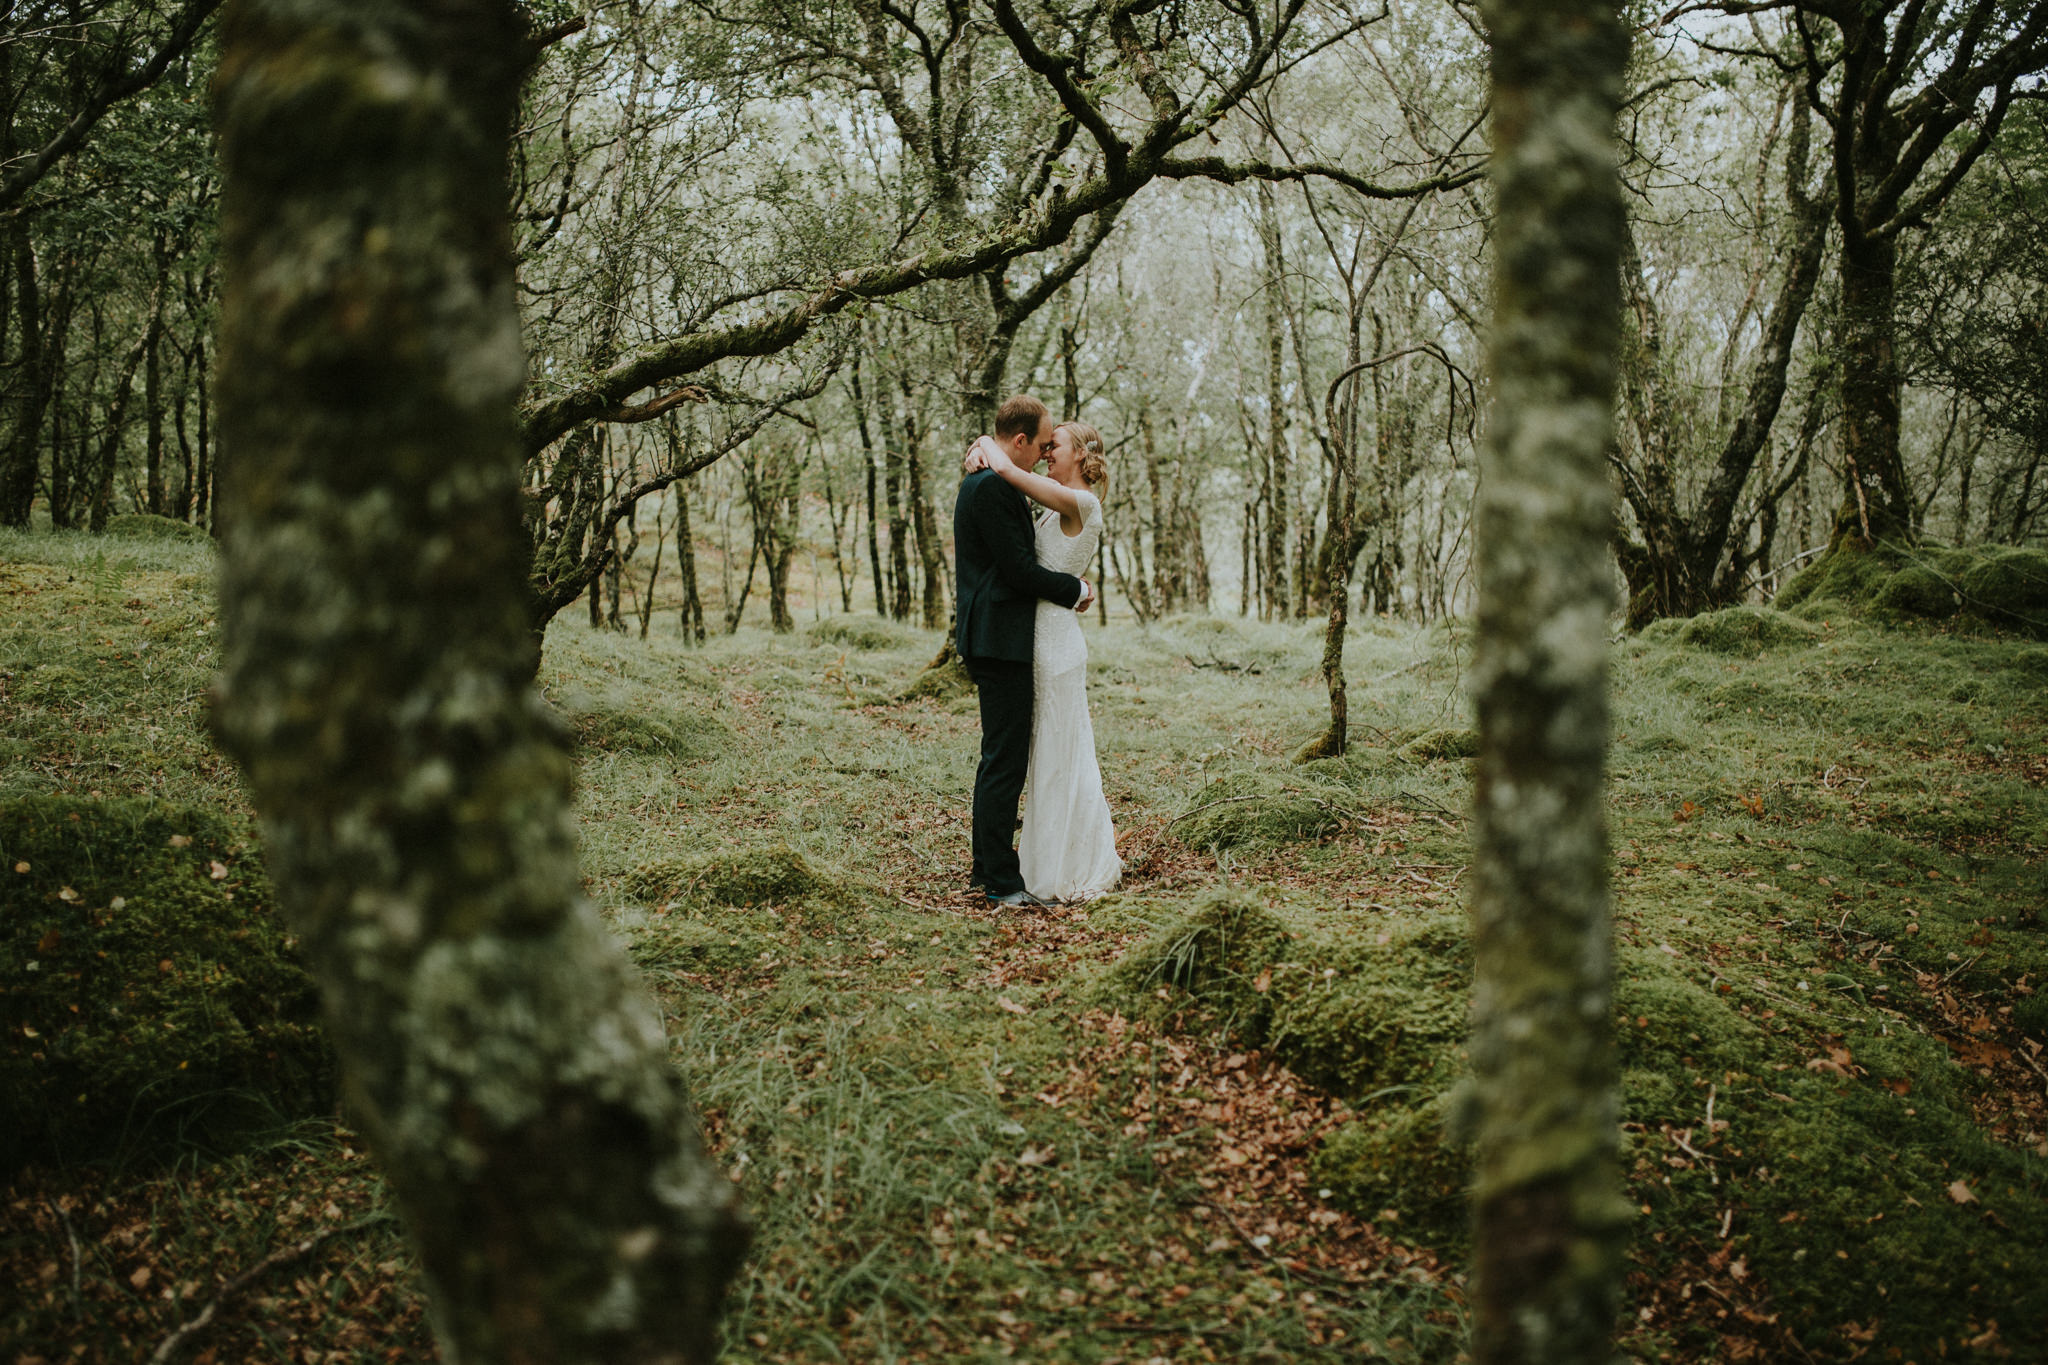 The wedding couple is holding each other in the forest.